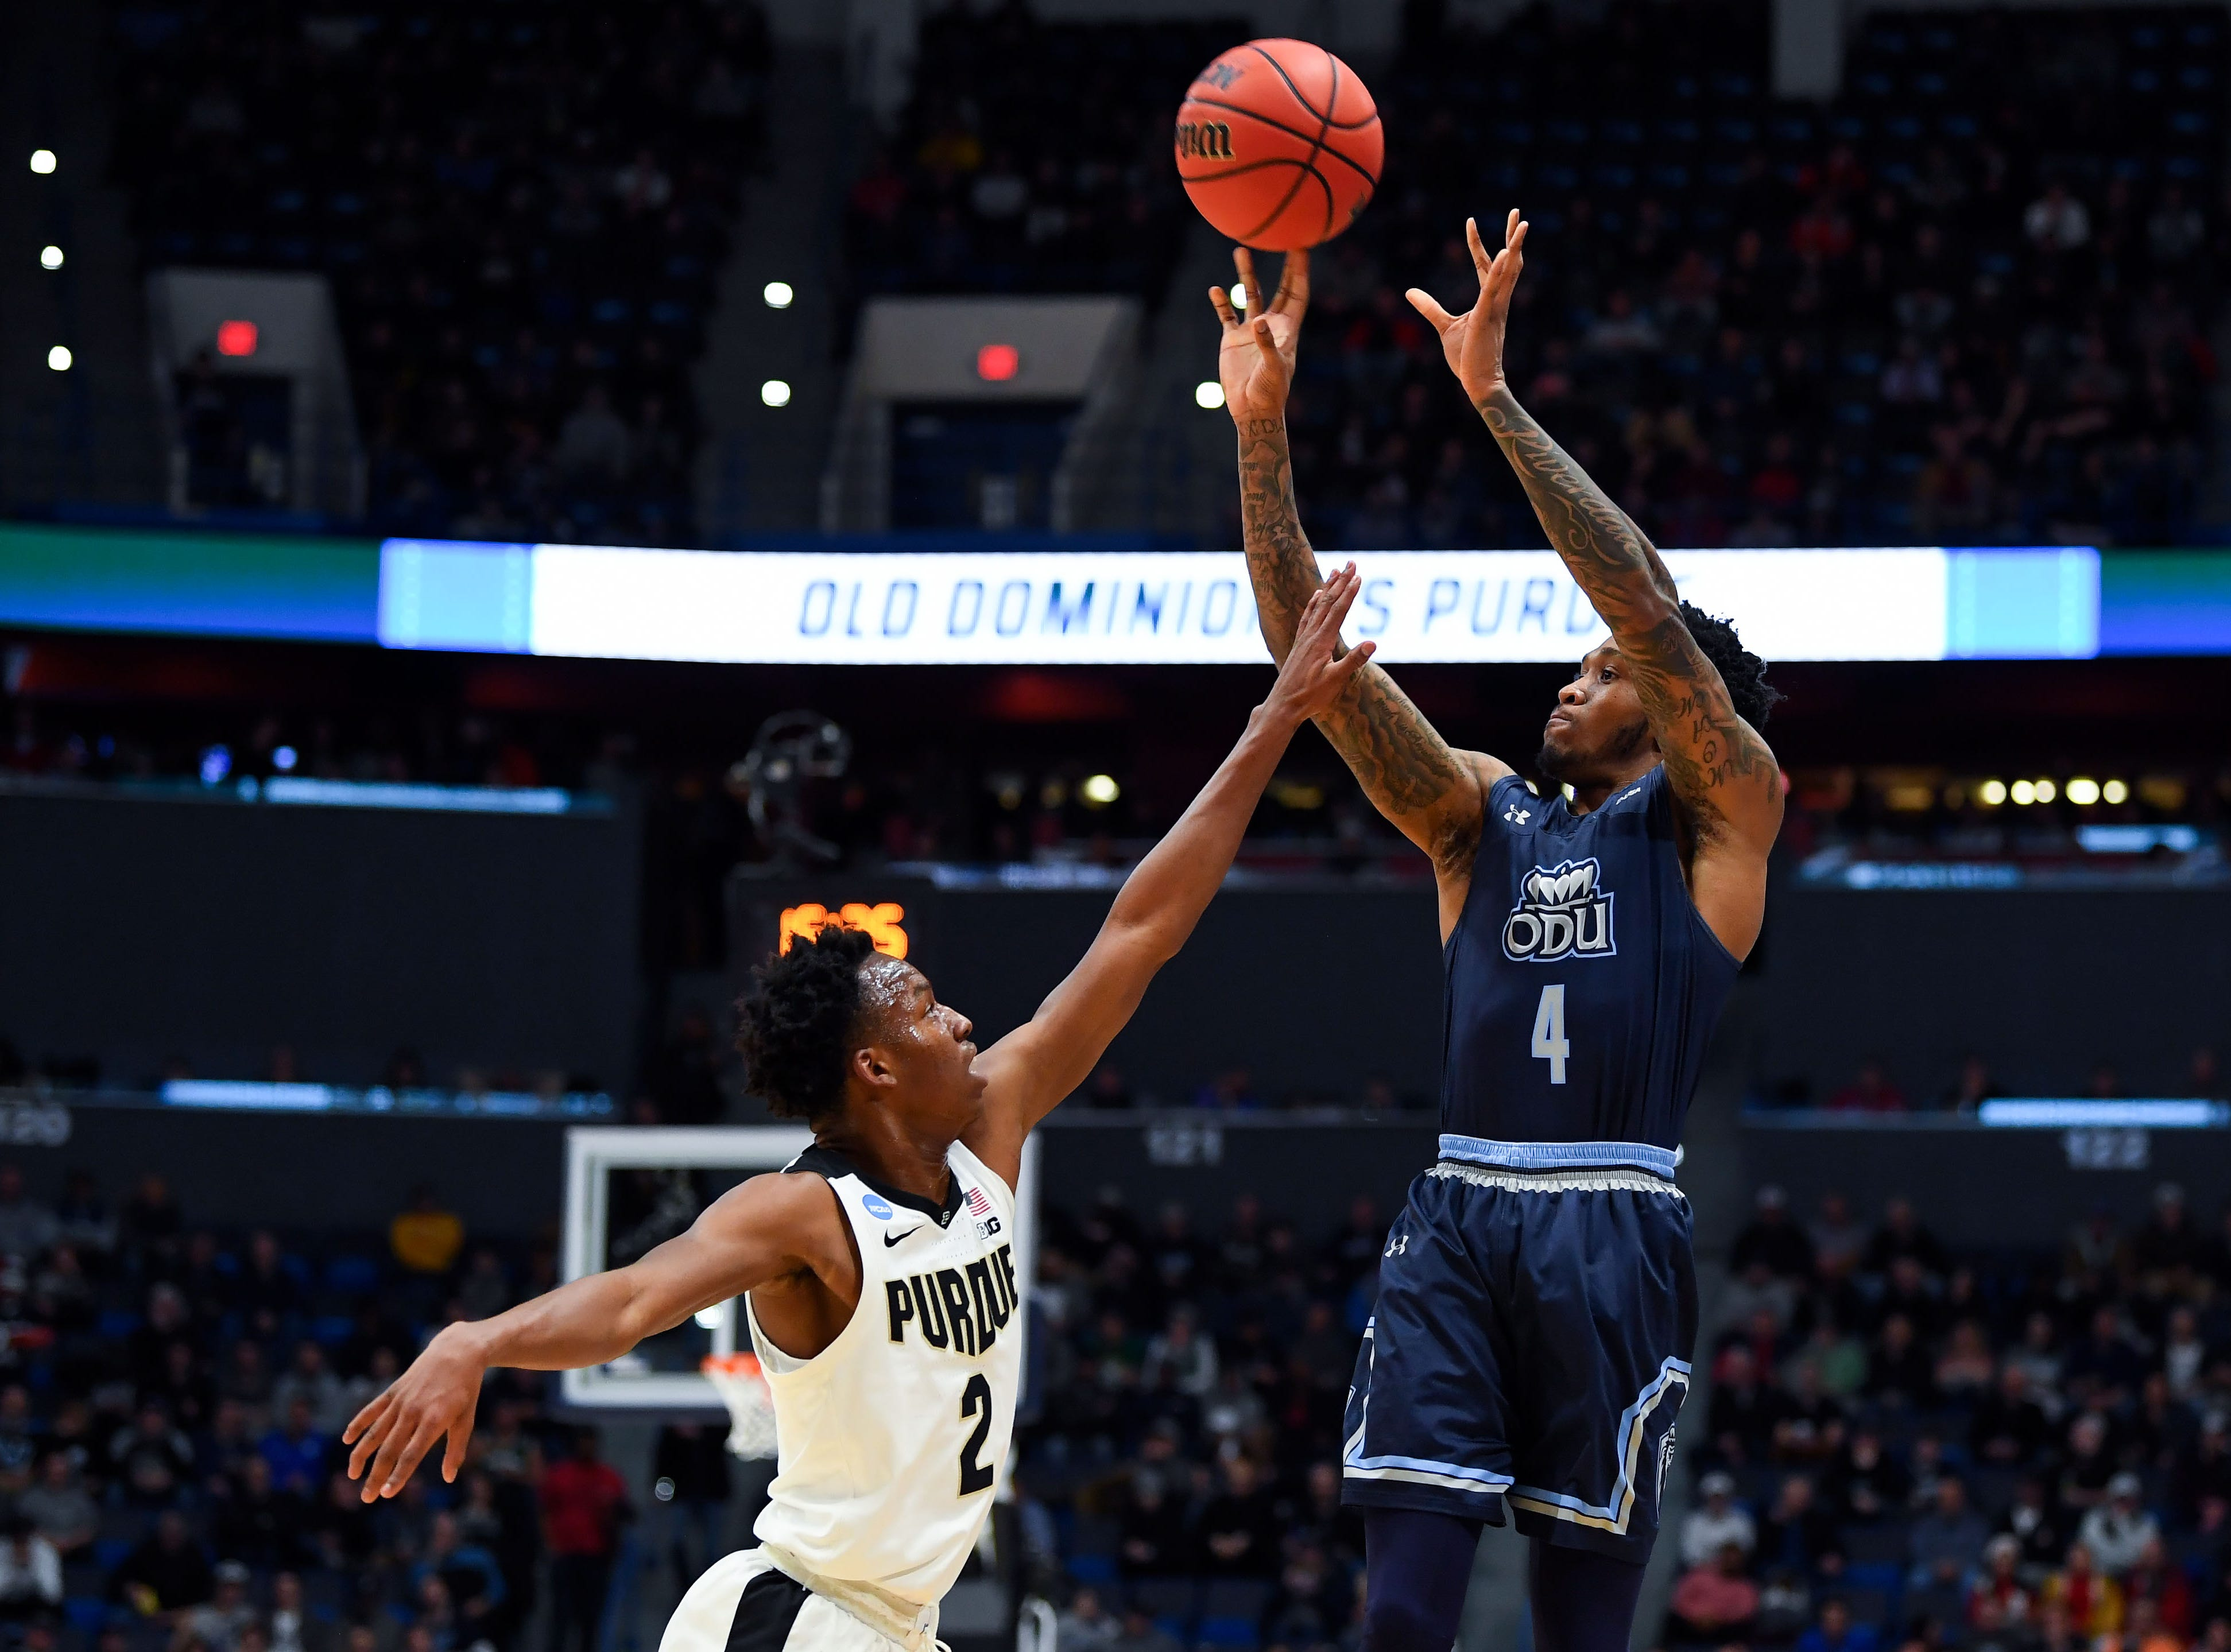 Old Dominion Monarchs guard Ahmad Caver (4) attempts a shot over Purdue Boilermakers guard Eric Hunter Jr. (2) during the first half of a game in the first round of the 2019 NCAA Tournament at XL Center.